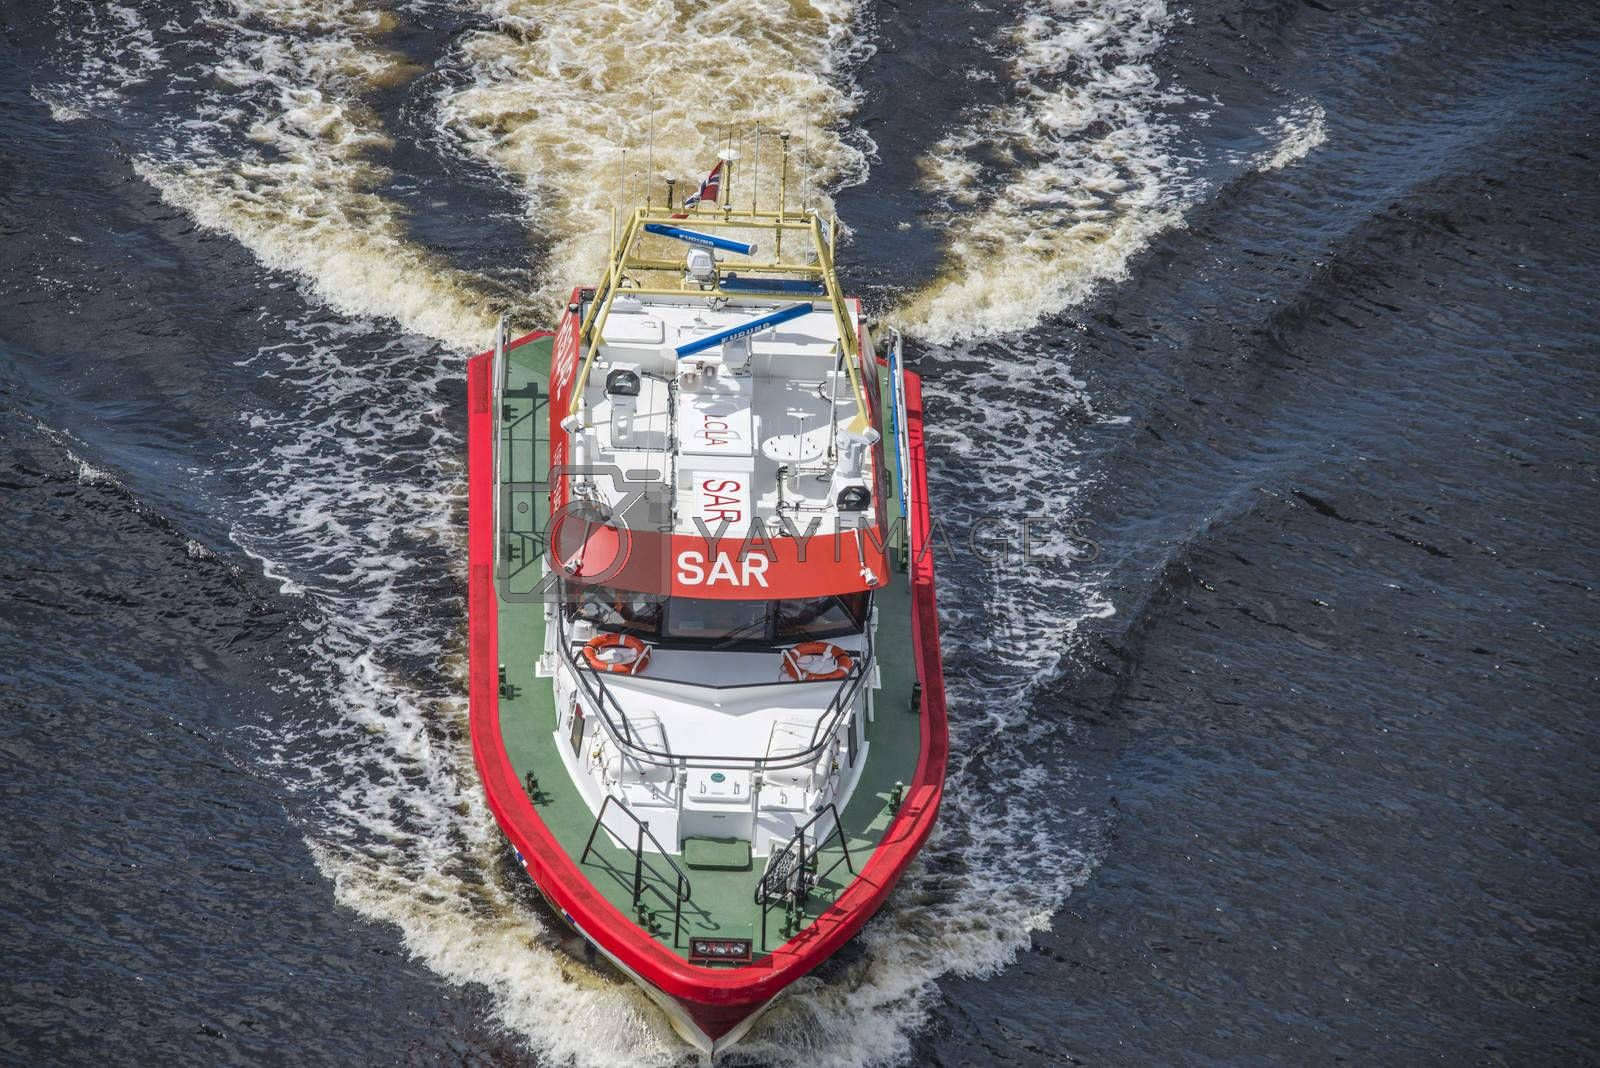 Rescue boat RS 142, Horn Flyer escorts MS Sj��kurs with NRK through Ringdalsfjord, heading for the port of Halden. Photo is shot from Svinesund bridge, Halden, Norway.